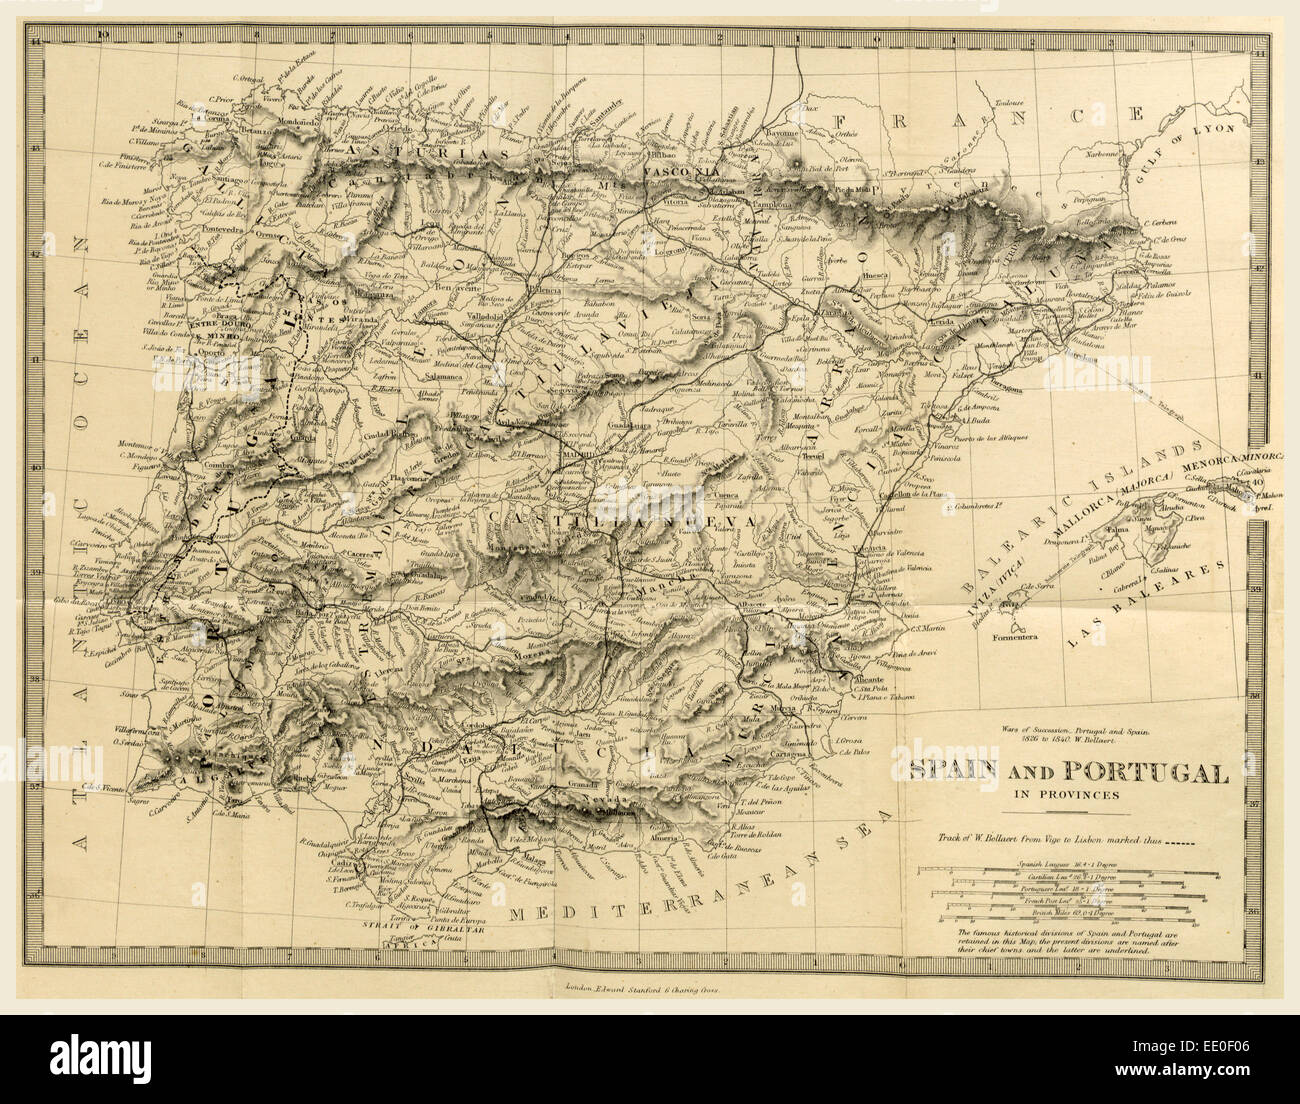 Map Spain and Portugal, The Wars of Succession of Portugal and Spain from 1826 to 1840, 19th century engraving - Stock Image